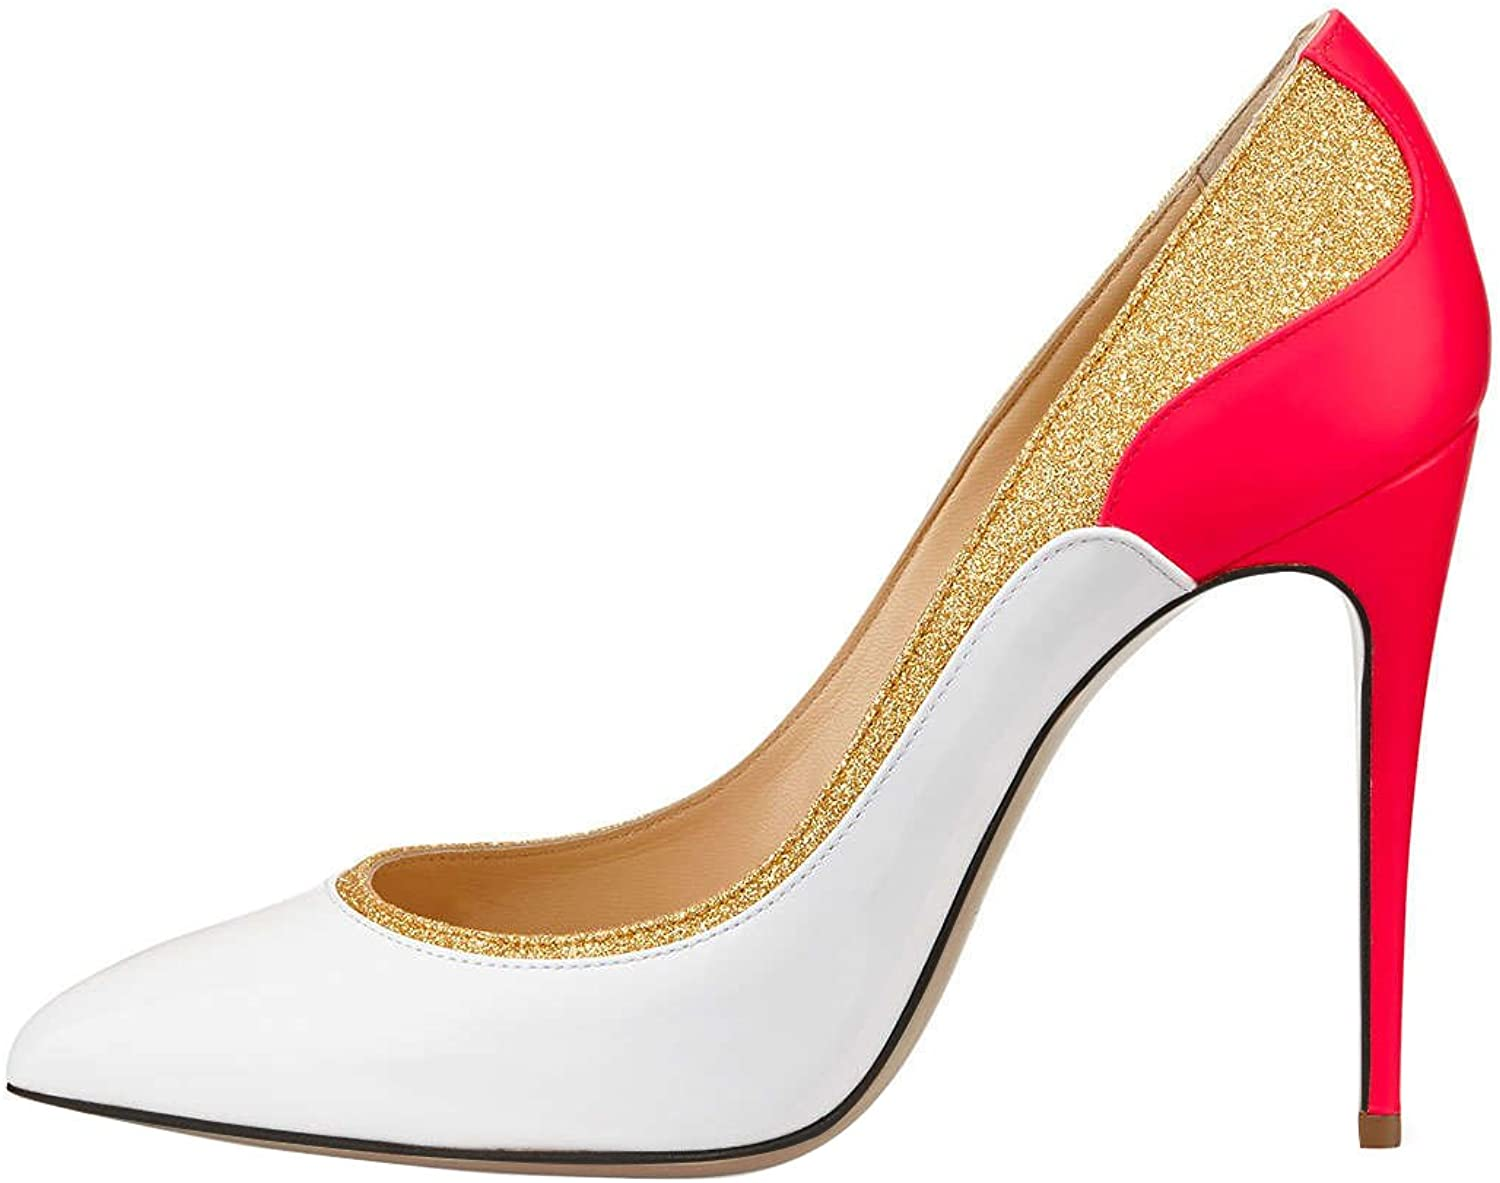 QianZuLian Womens Fashion Pointed Toe High-Heels Three color Pumps